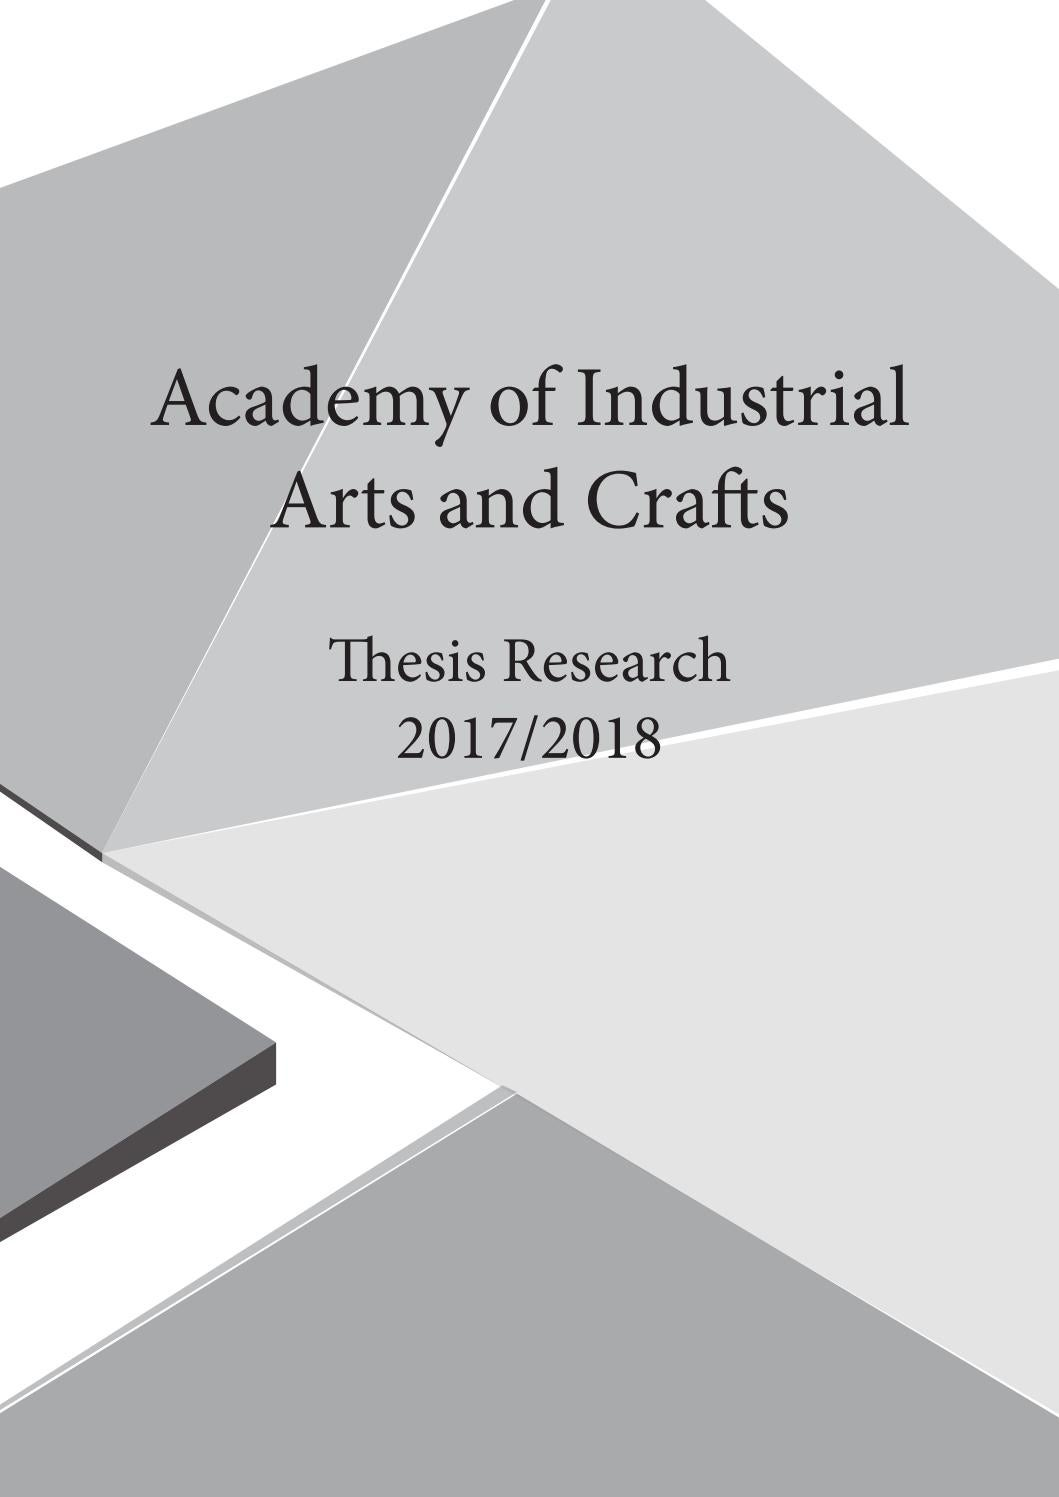 Academy Of Industrial Arts And Crafts Thesis Research By Mohammed Al Hanbali Issuu